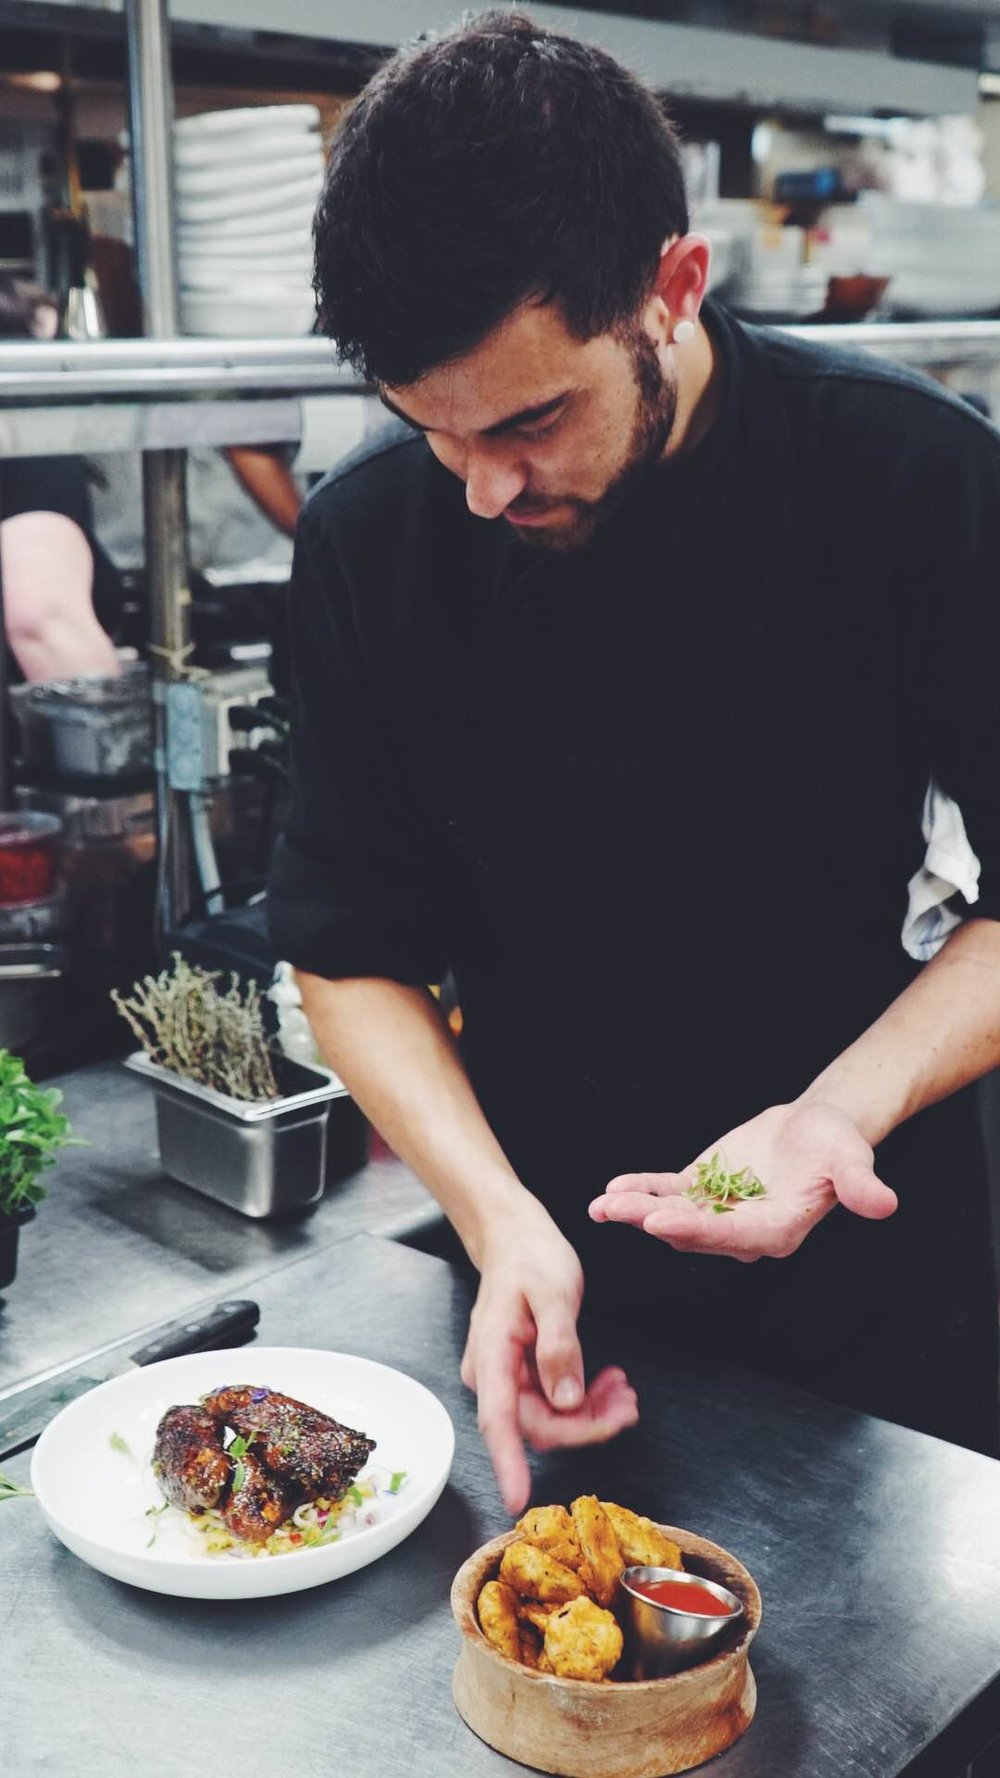 Chef Chris DeMuth, Sous Chef, Republic Tavern